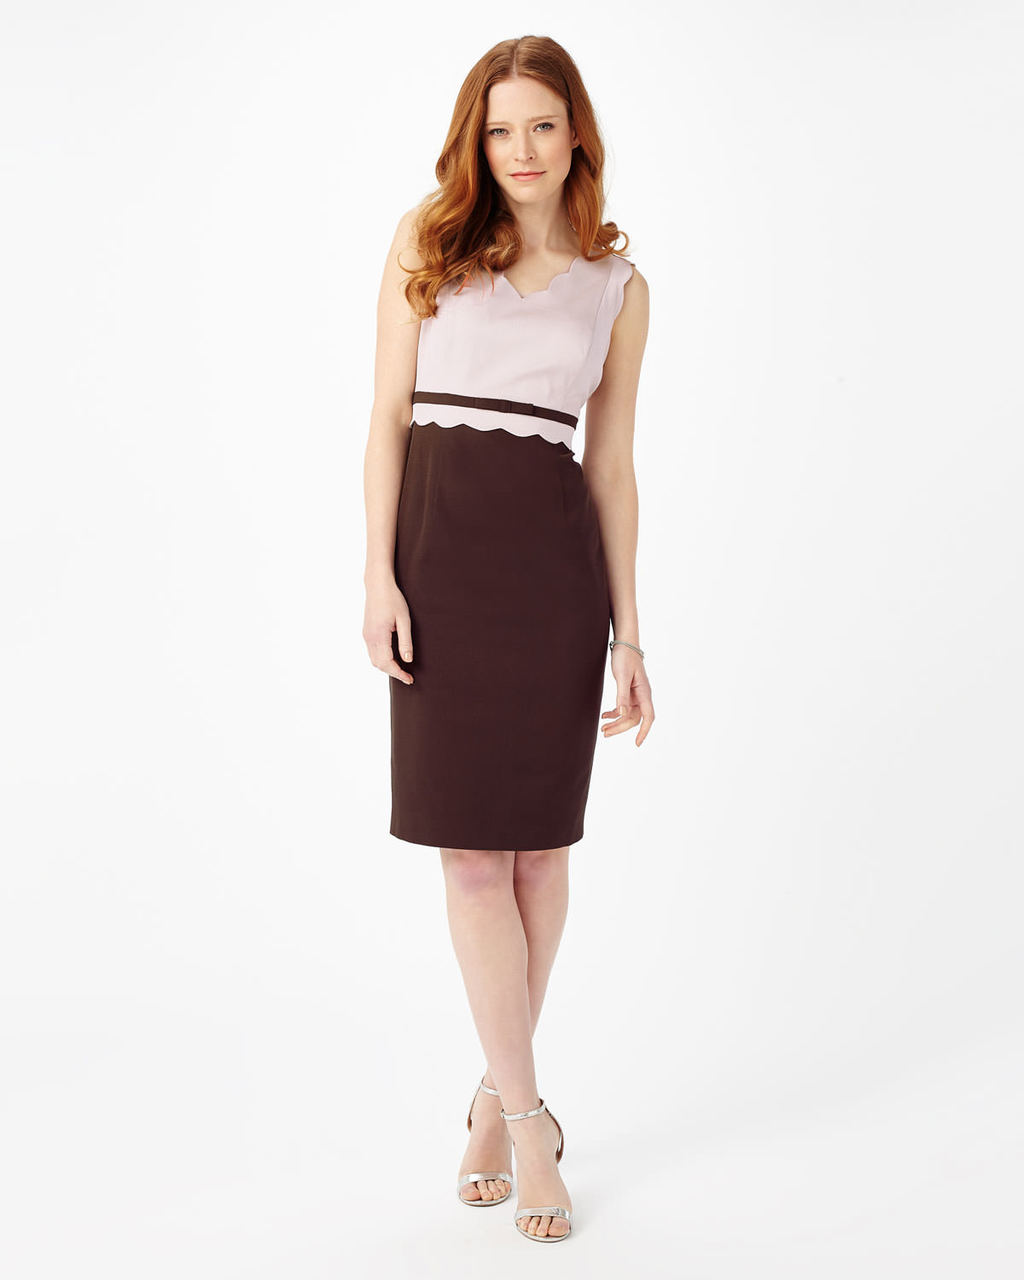 Florence Scallop Dress - style: shift; neckline: v-neck; fit: tailored/fitted; sleeve style: sleeveless; secondary colour: blush; predominant colour: burgundy; occasions: evening; length: on the knee; fibres: viscose/rayon - stretch; sleeve length: sleeveless; texture group: crepes; pattern type: fabric; pattern size: standard; pattern: colourblock; embellishment: lace; multicoloured: multicoloured; season: s/s 2016; wardrobe: event